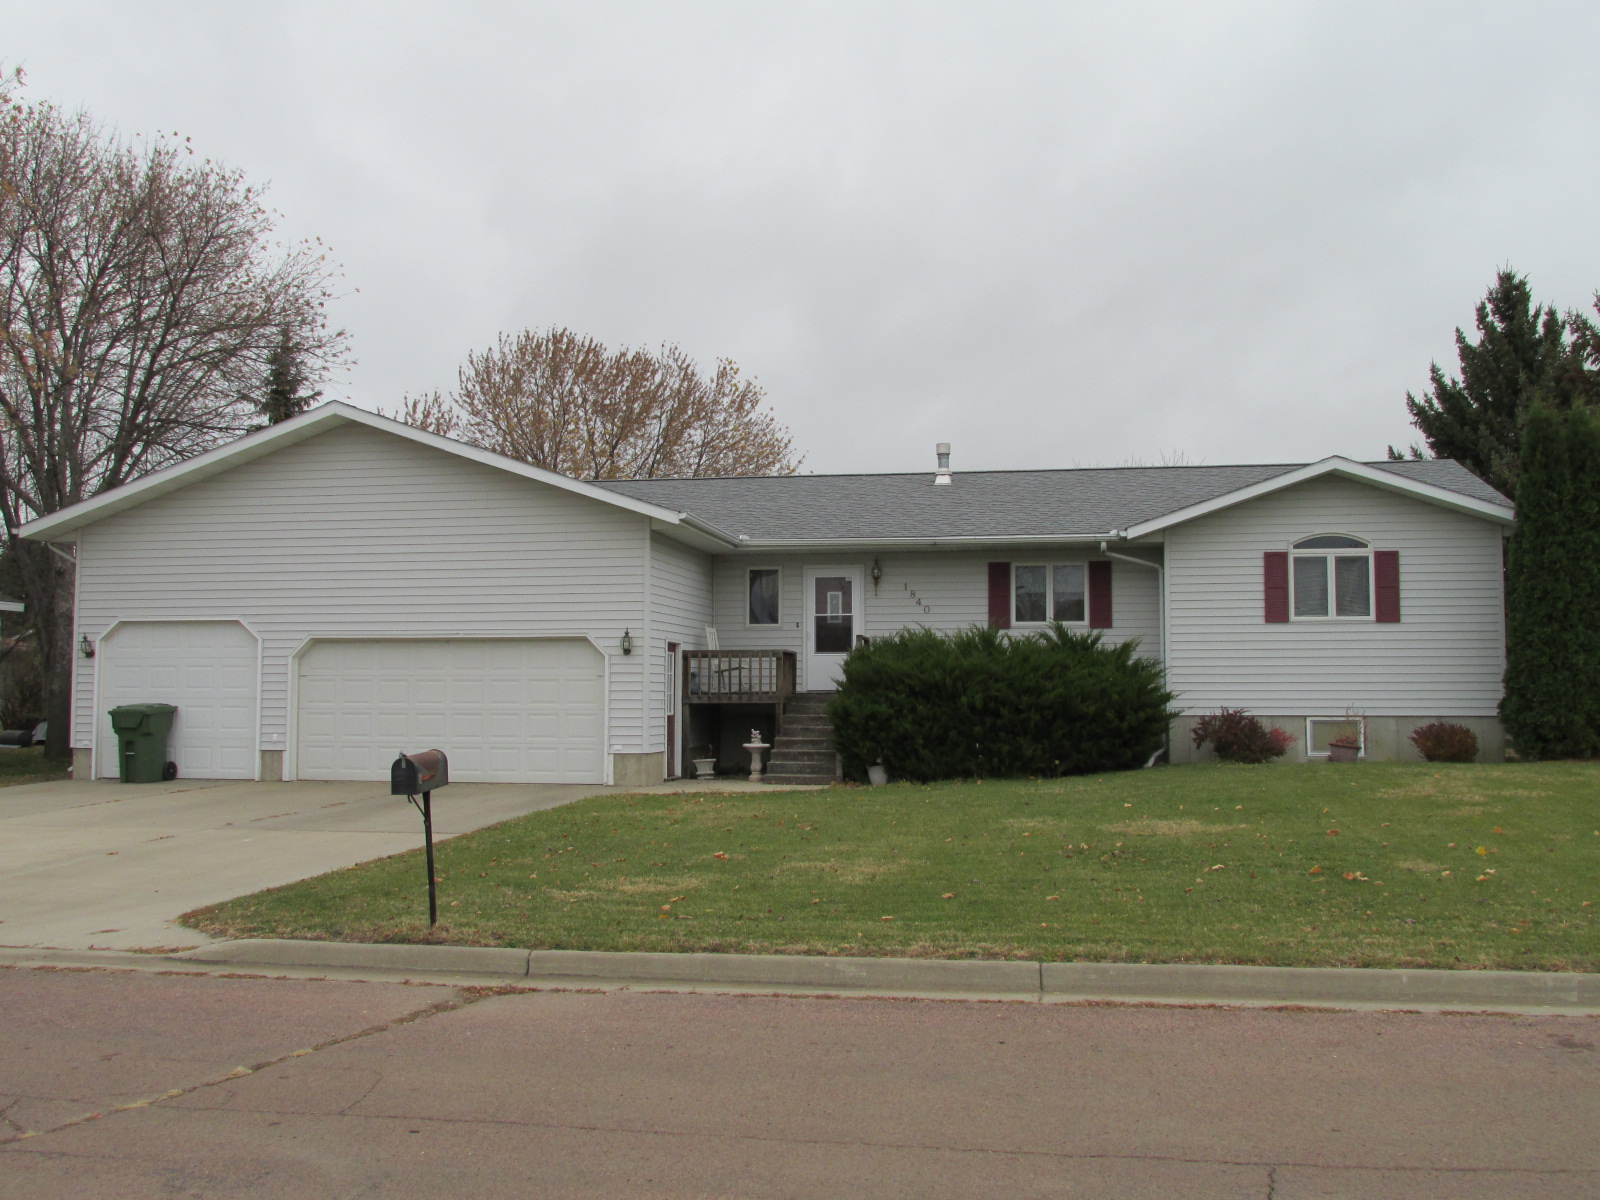 1840 Indiana St SE, Huron, South Dakota 57350